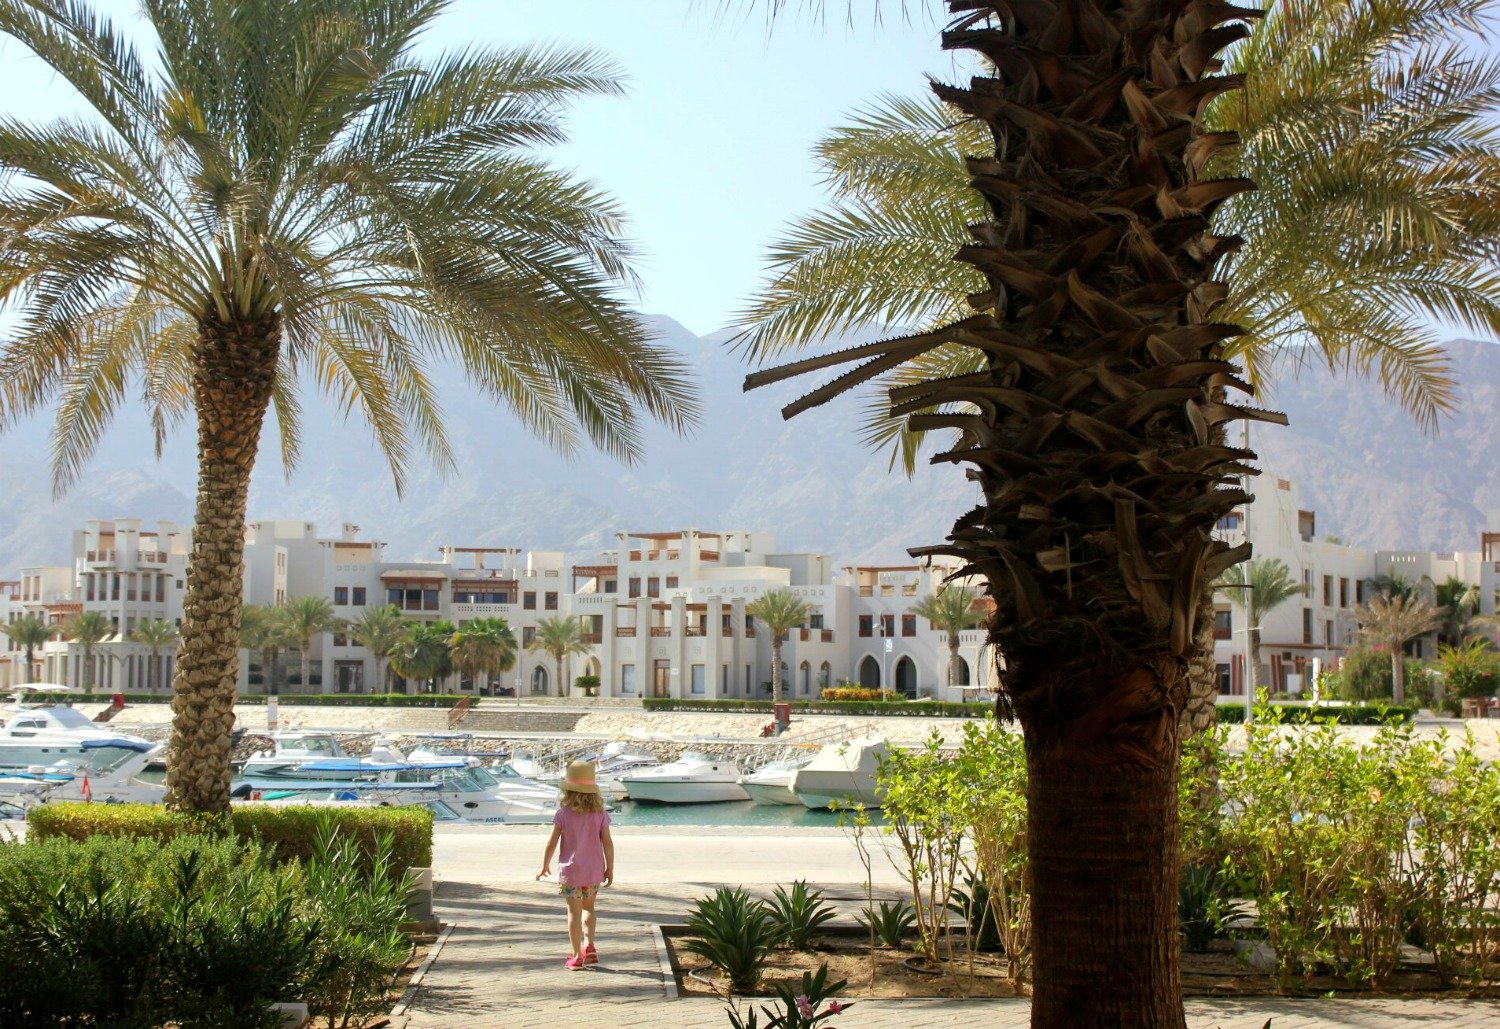 My daughter walks between palm trees at the marina of As Sifa with the white buildings and mountains in the background, not far from Muscat, Oman - my nine reasons to visit Oman with kids